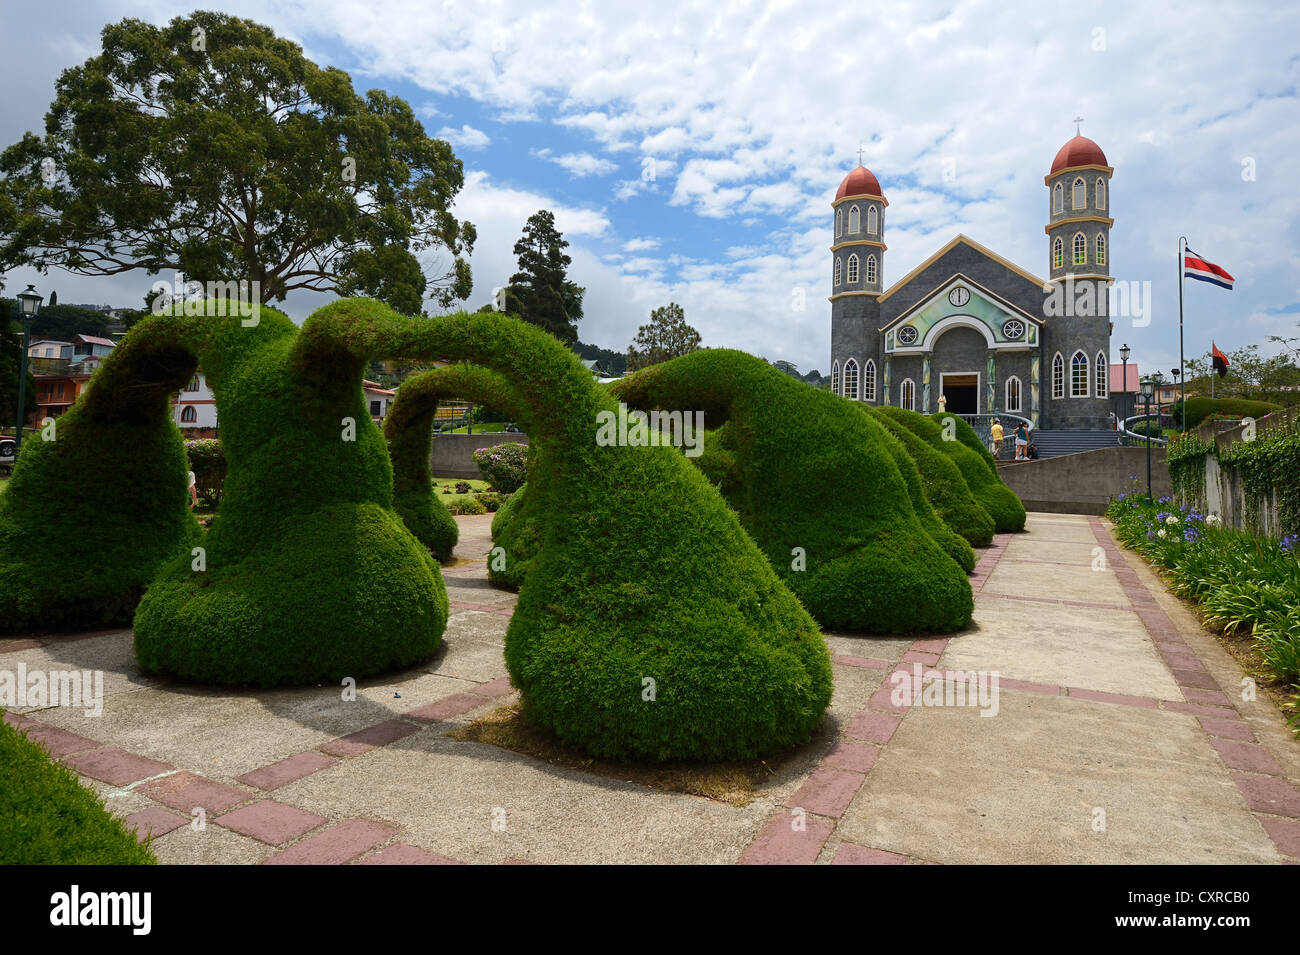 Landscaped park designed by Evangelista Blanco with artfully trimmed cypress trees, church San Rafael at back, Zarcero - Stock Image